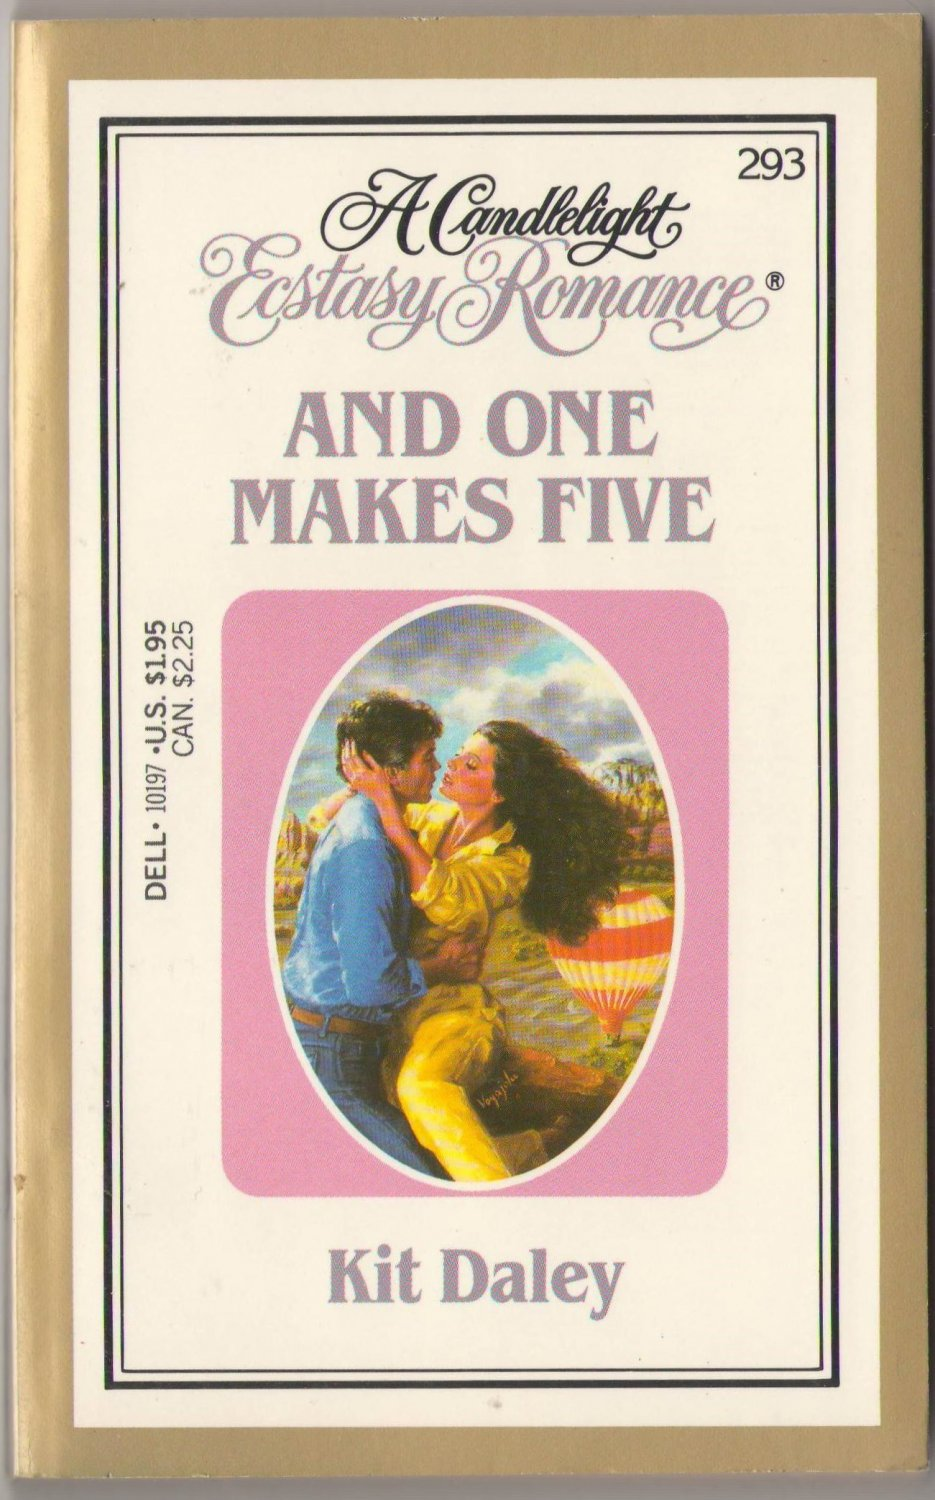 And One Makes Five by Kit Daley #293